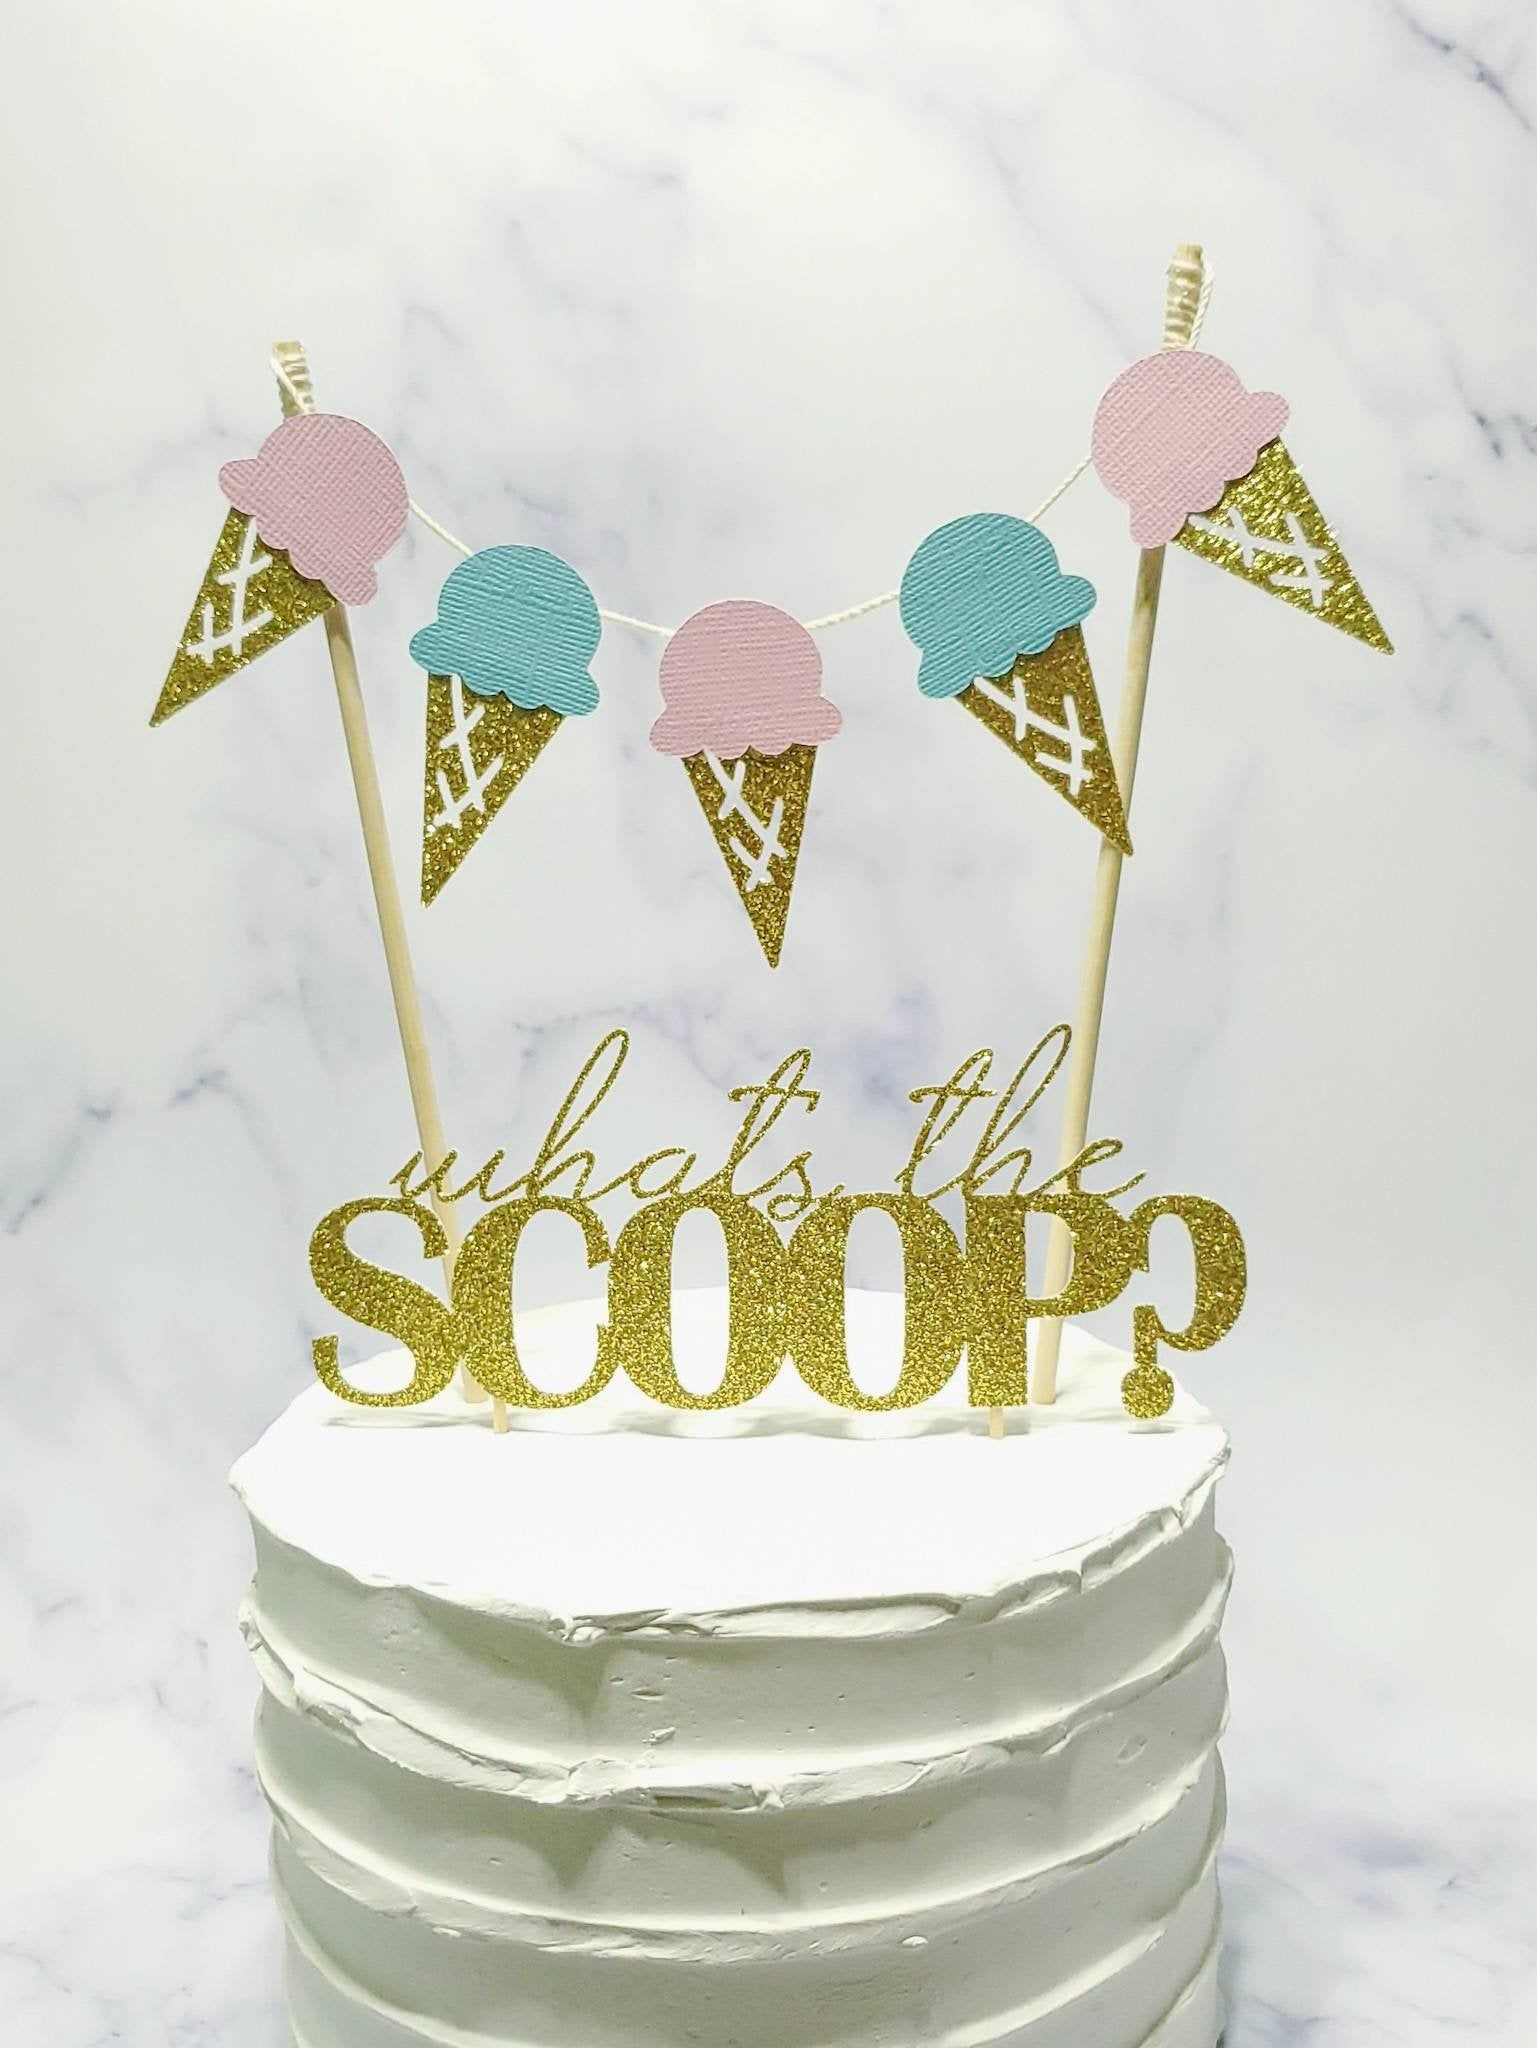 Whats The Scoop Cake Topper What S The Scoop Cake Topper Etsy Ice Cream Decorations Gender Reveal Cake Ice Cream Party